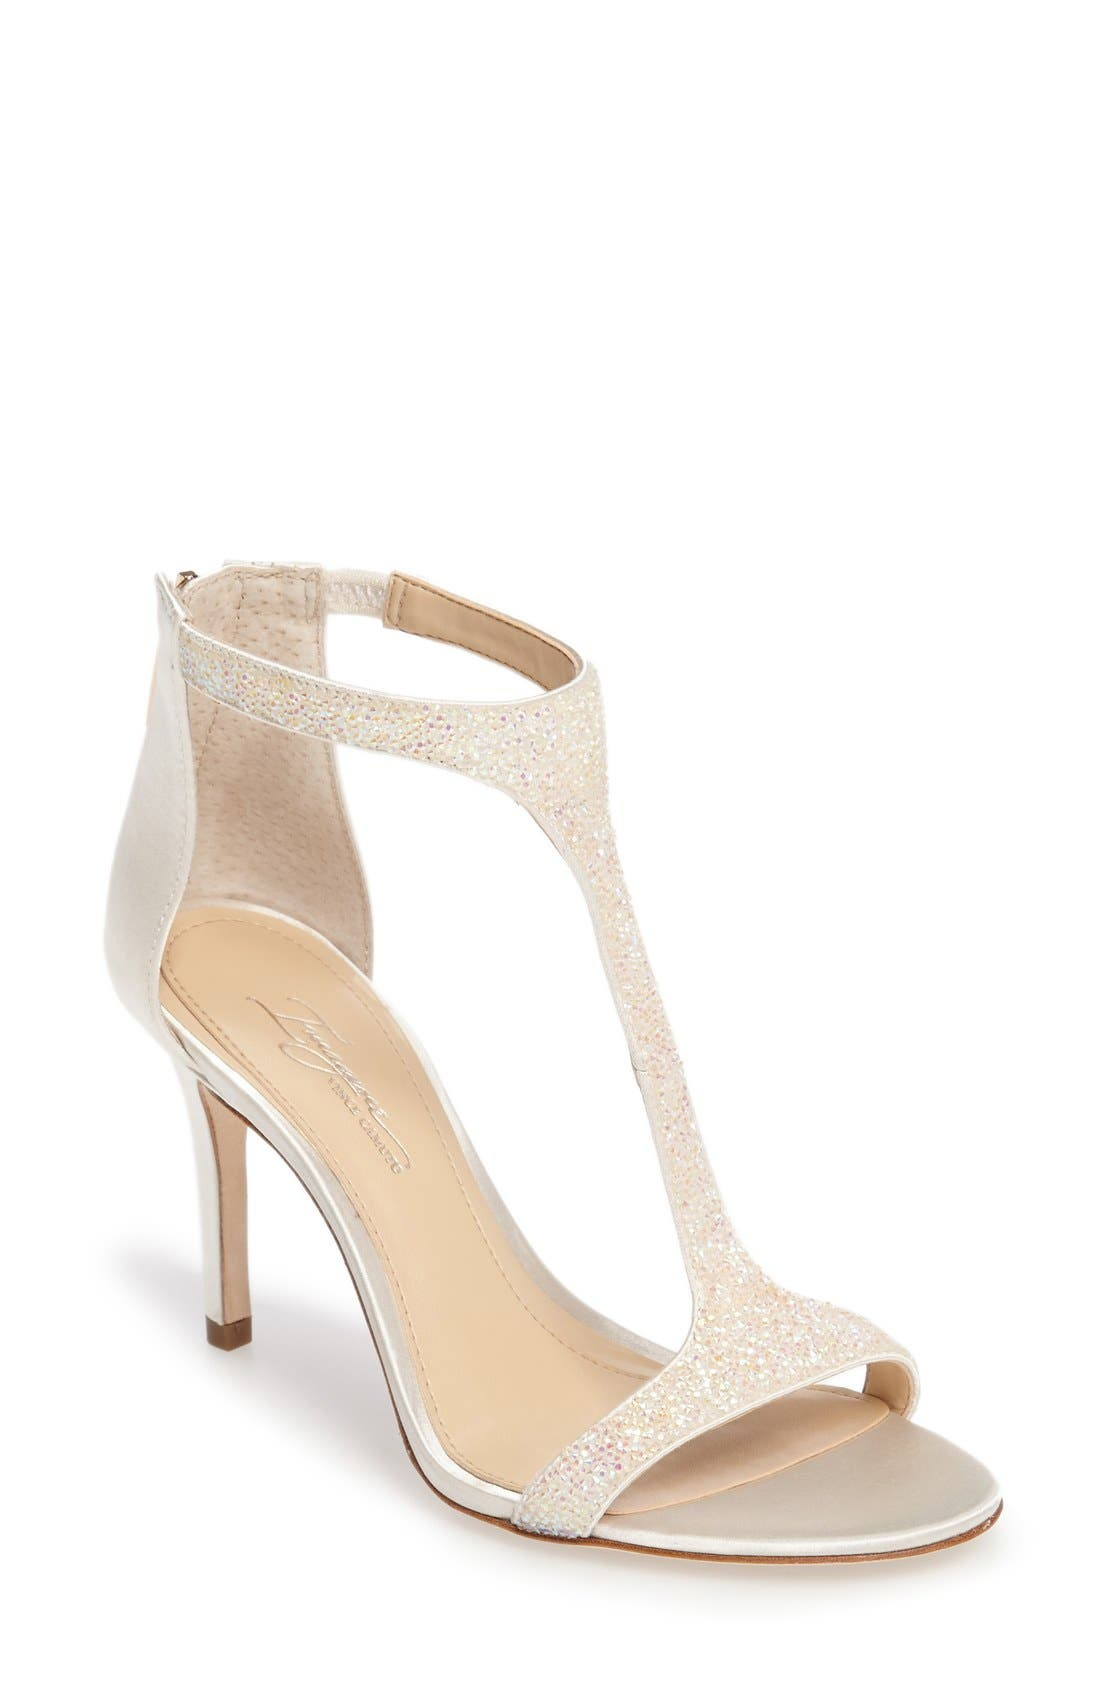 Main Image - Imagine by Vince Camuto 'Phoebe' Embellished T-Strap Sandal (Women)